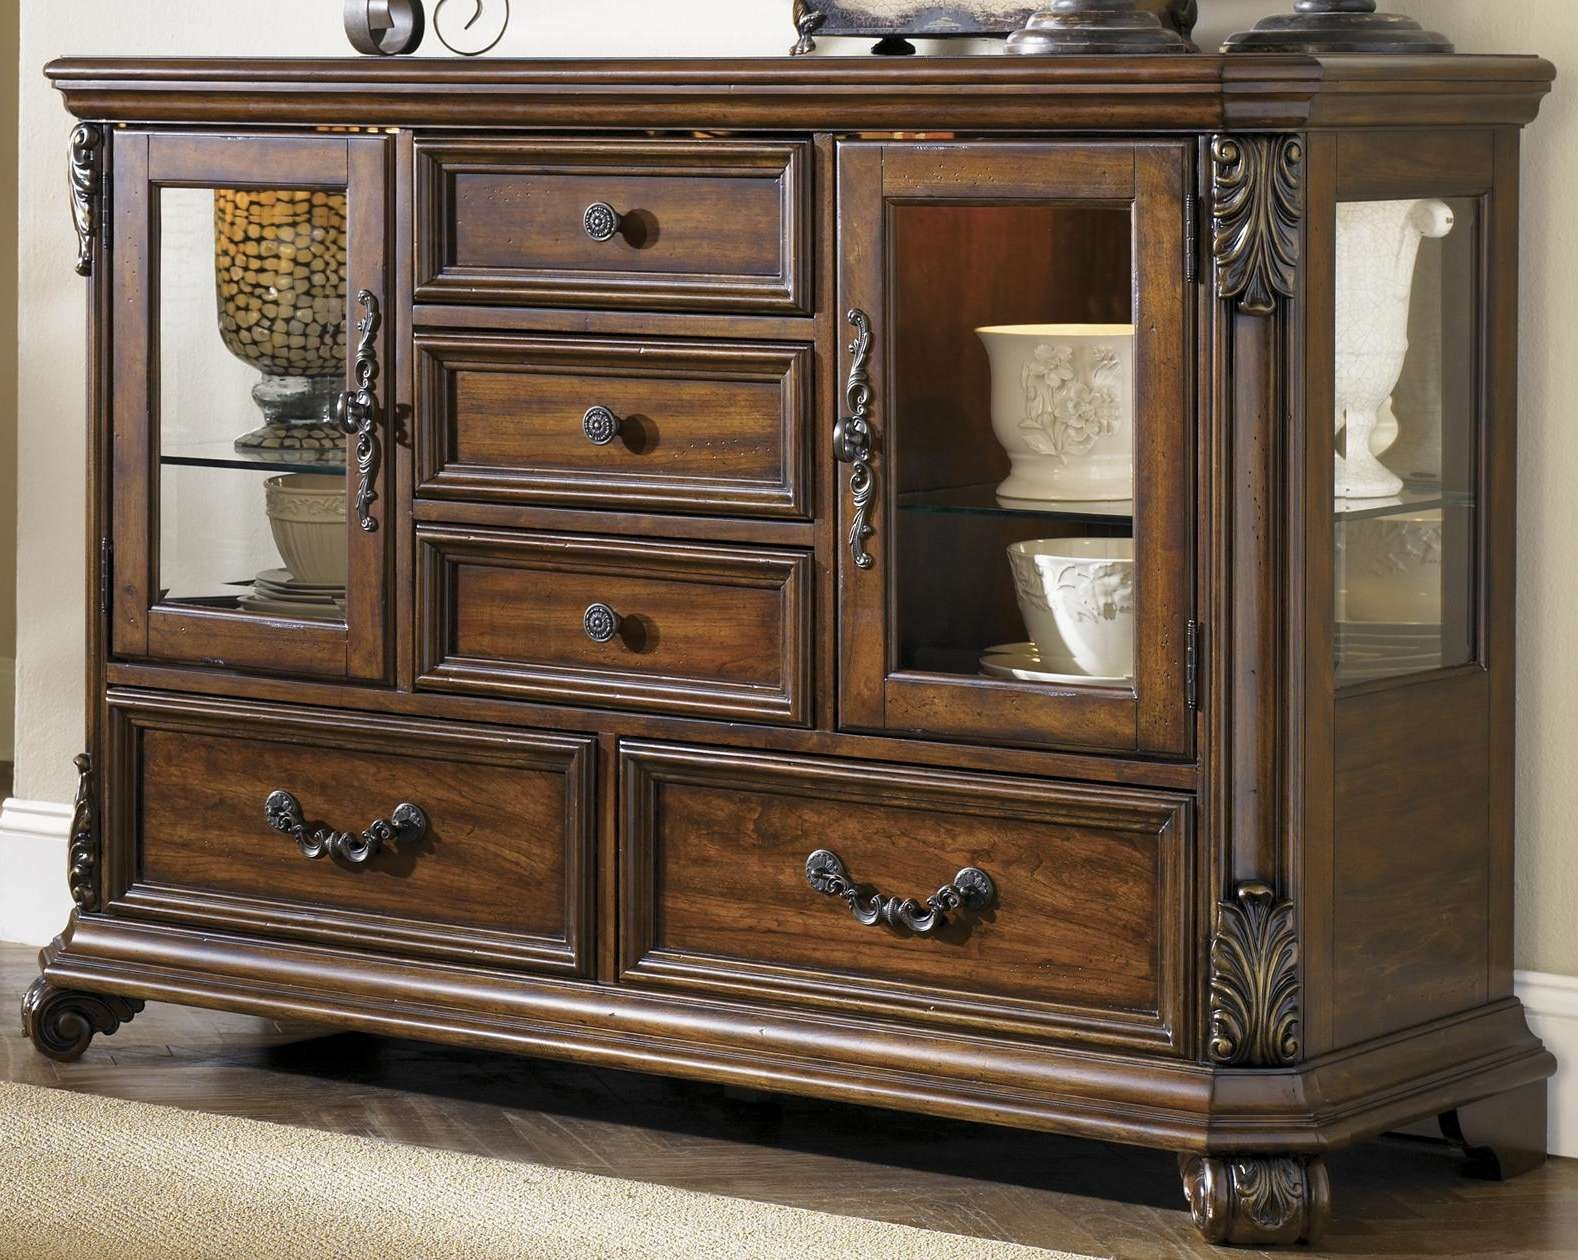 Glass Door Buffet Dining Serverliberty Furniture | Wolf And In Server Sideboards Furniture (View 11 of 20)